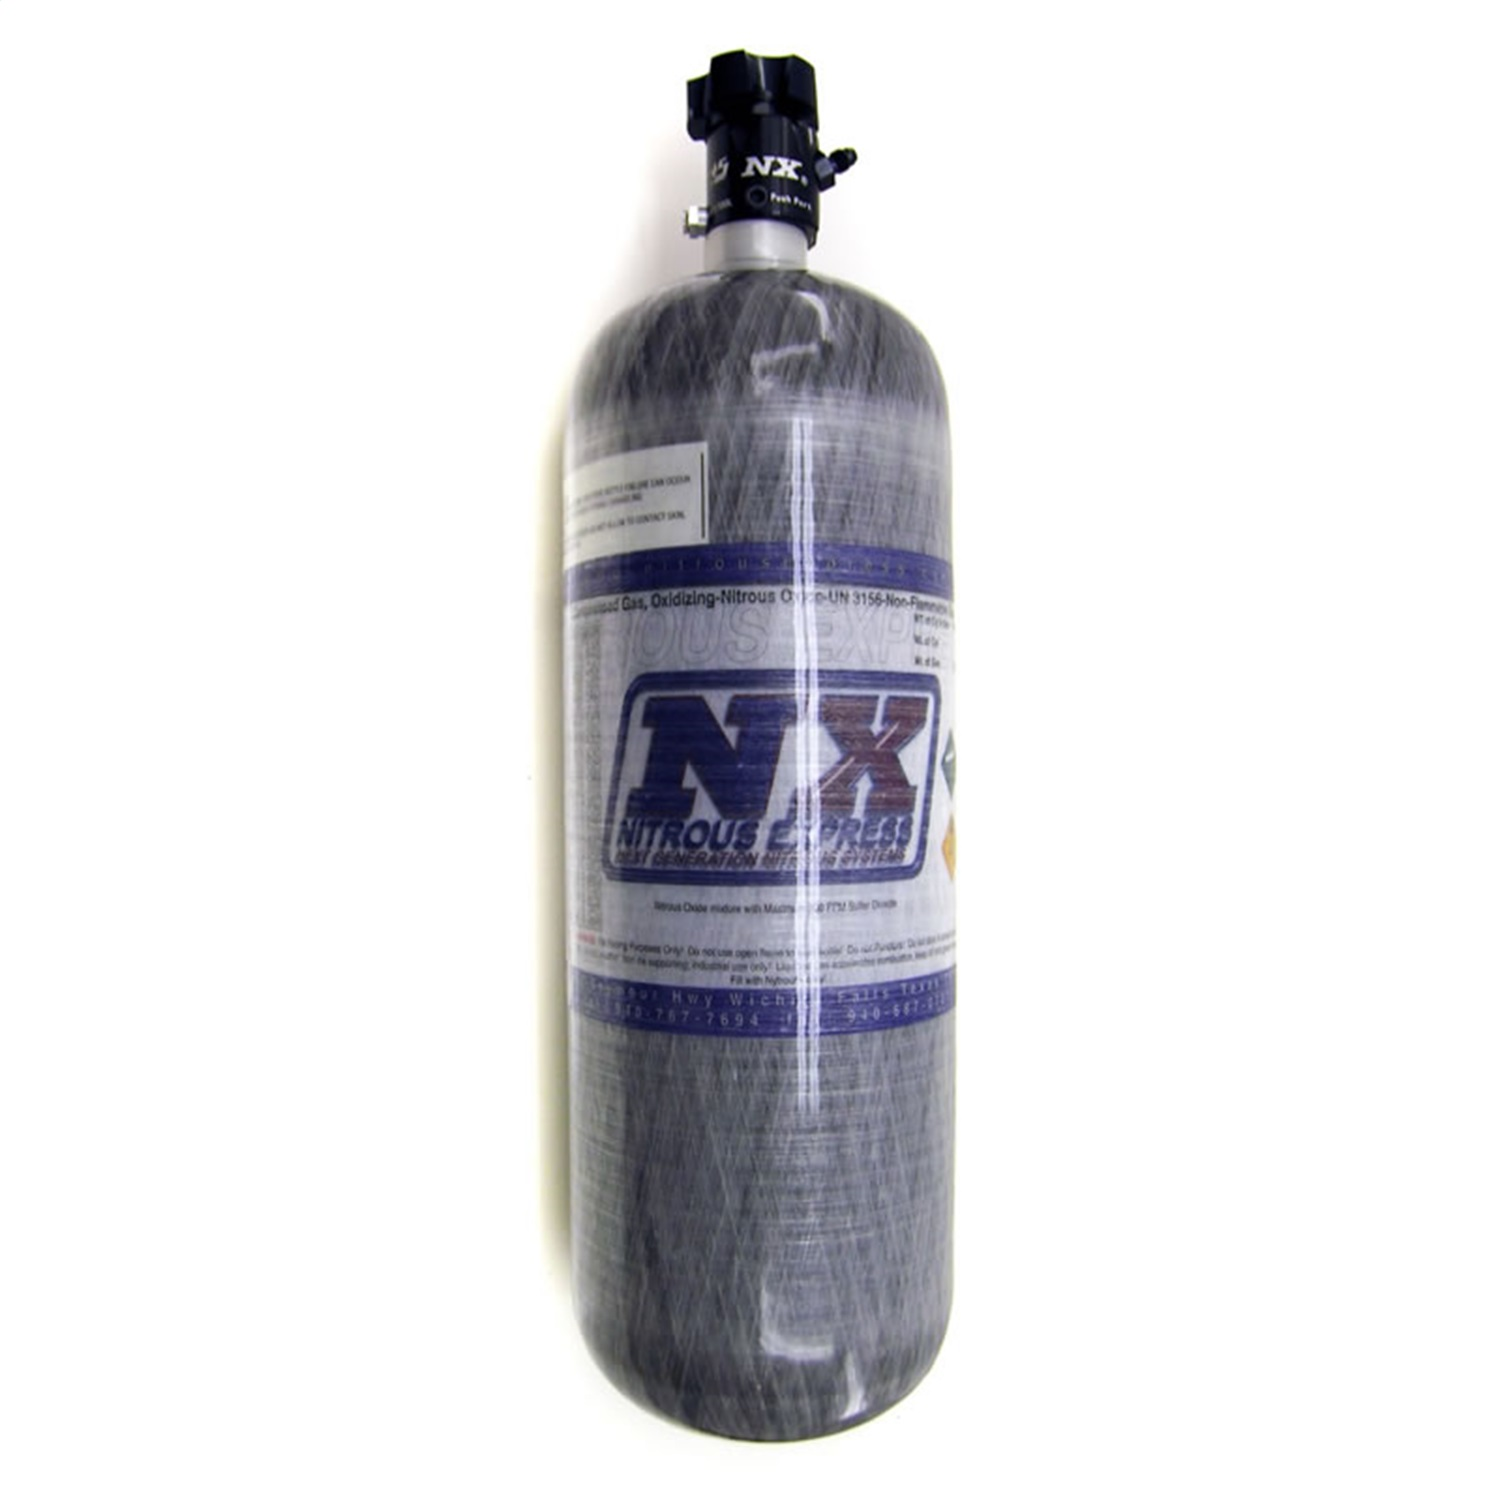 Nitrous Express 11152 Nitrous Bottle